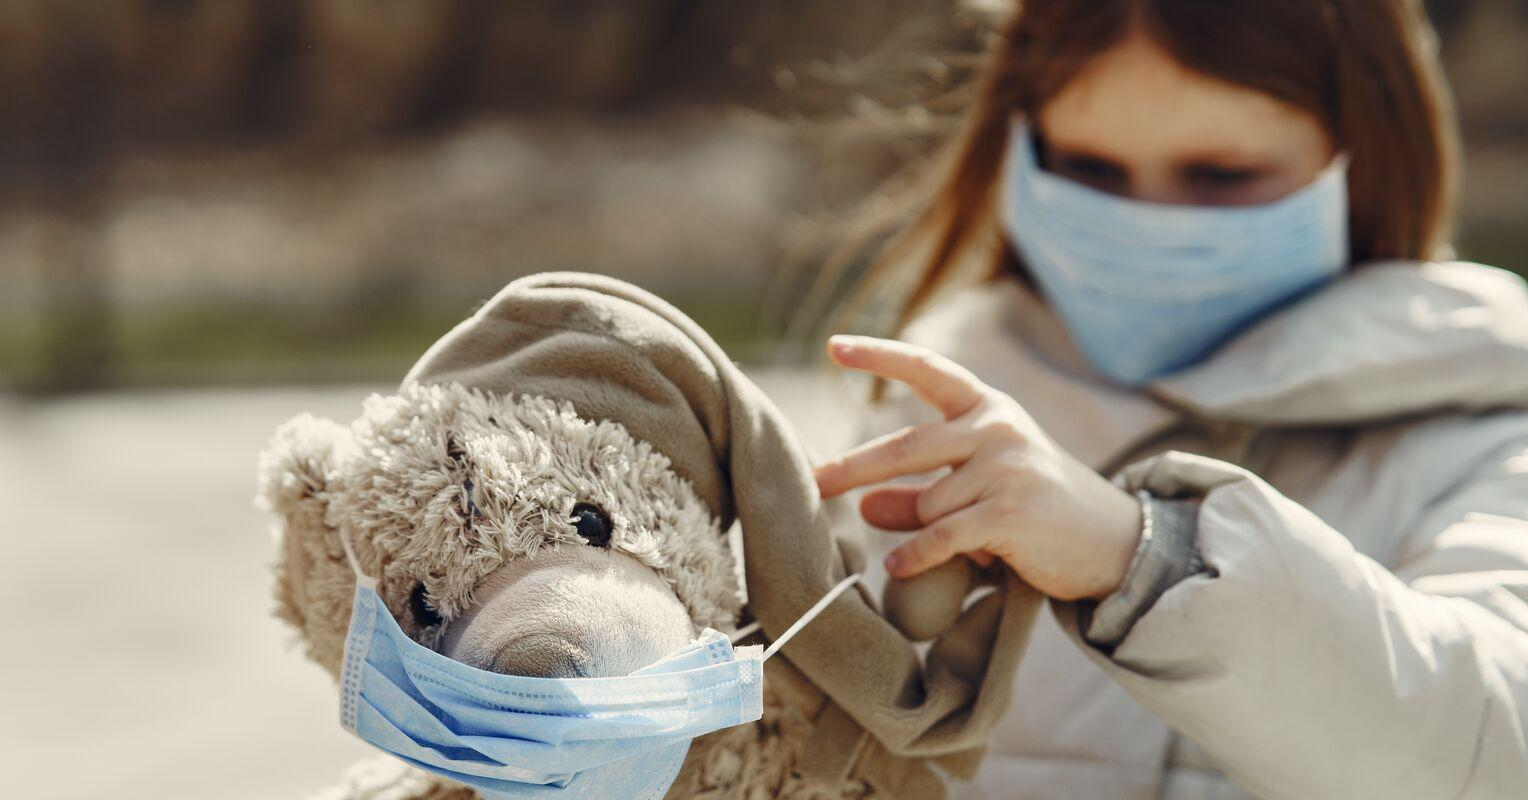 How the Pandemic is Affecting Our Children